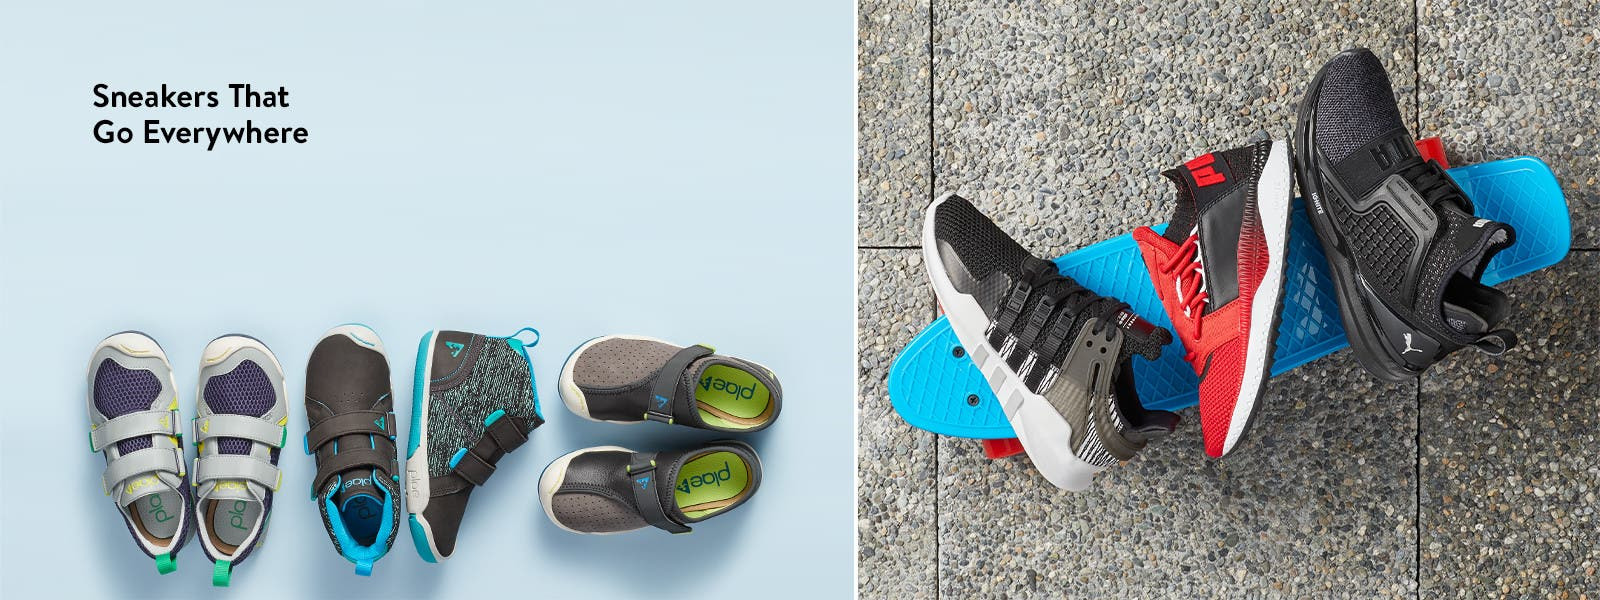 Boys' sneakers that go everywhere.